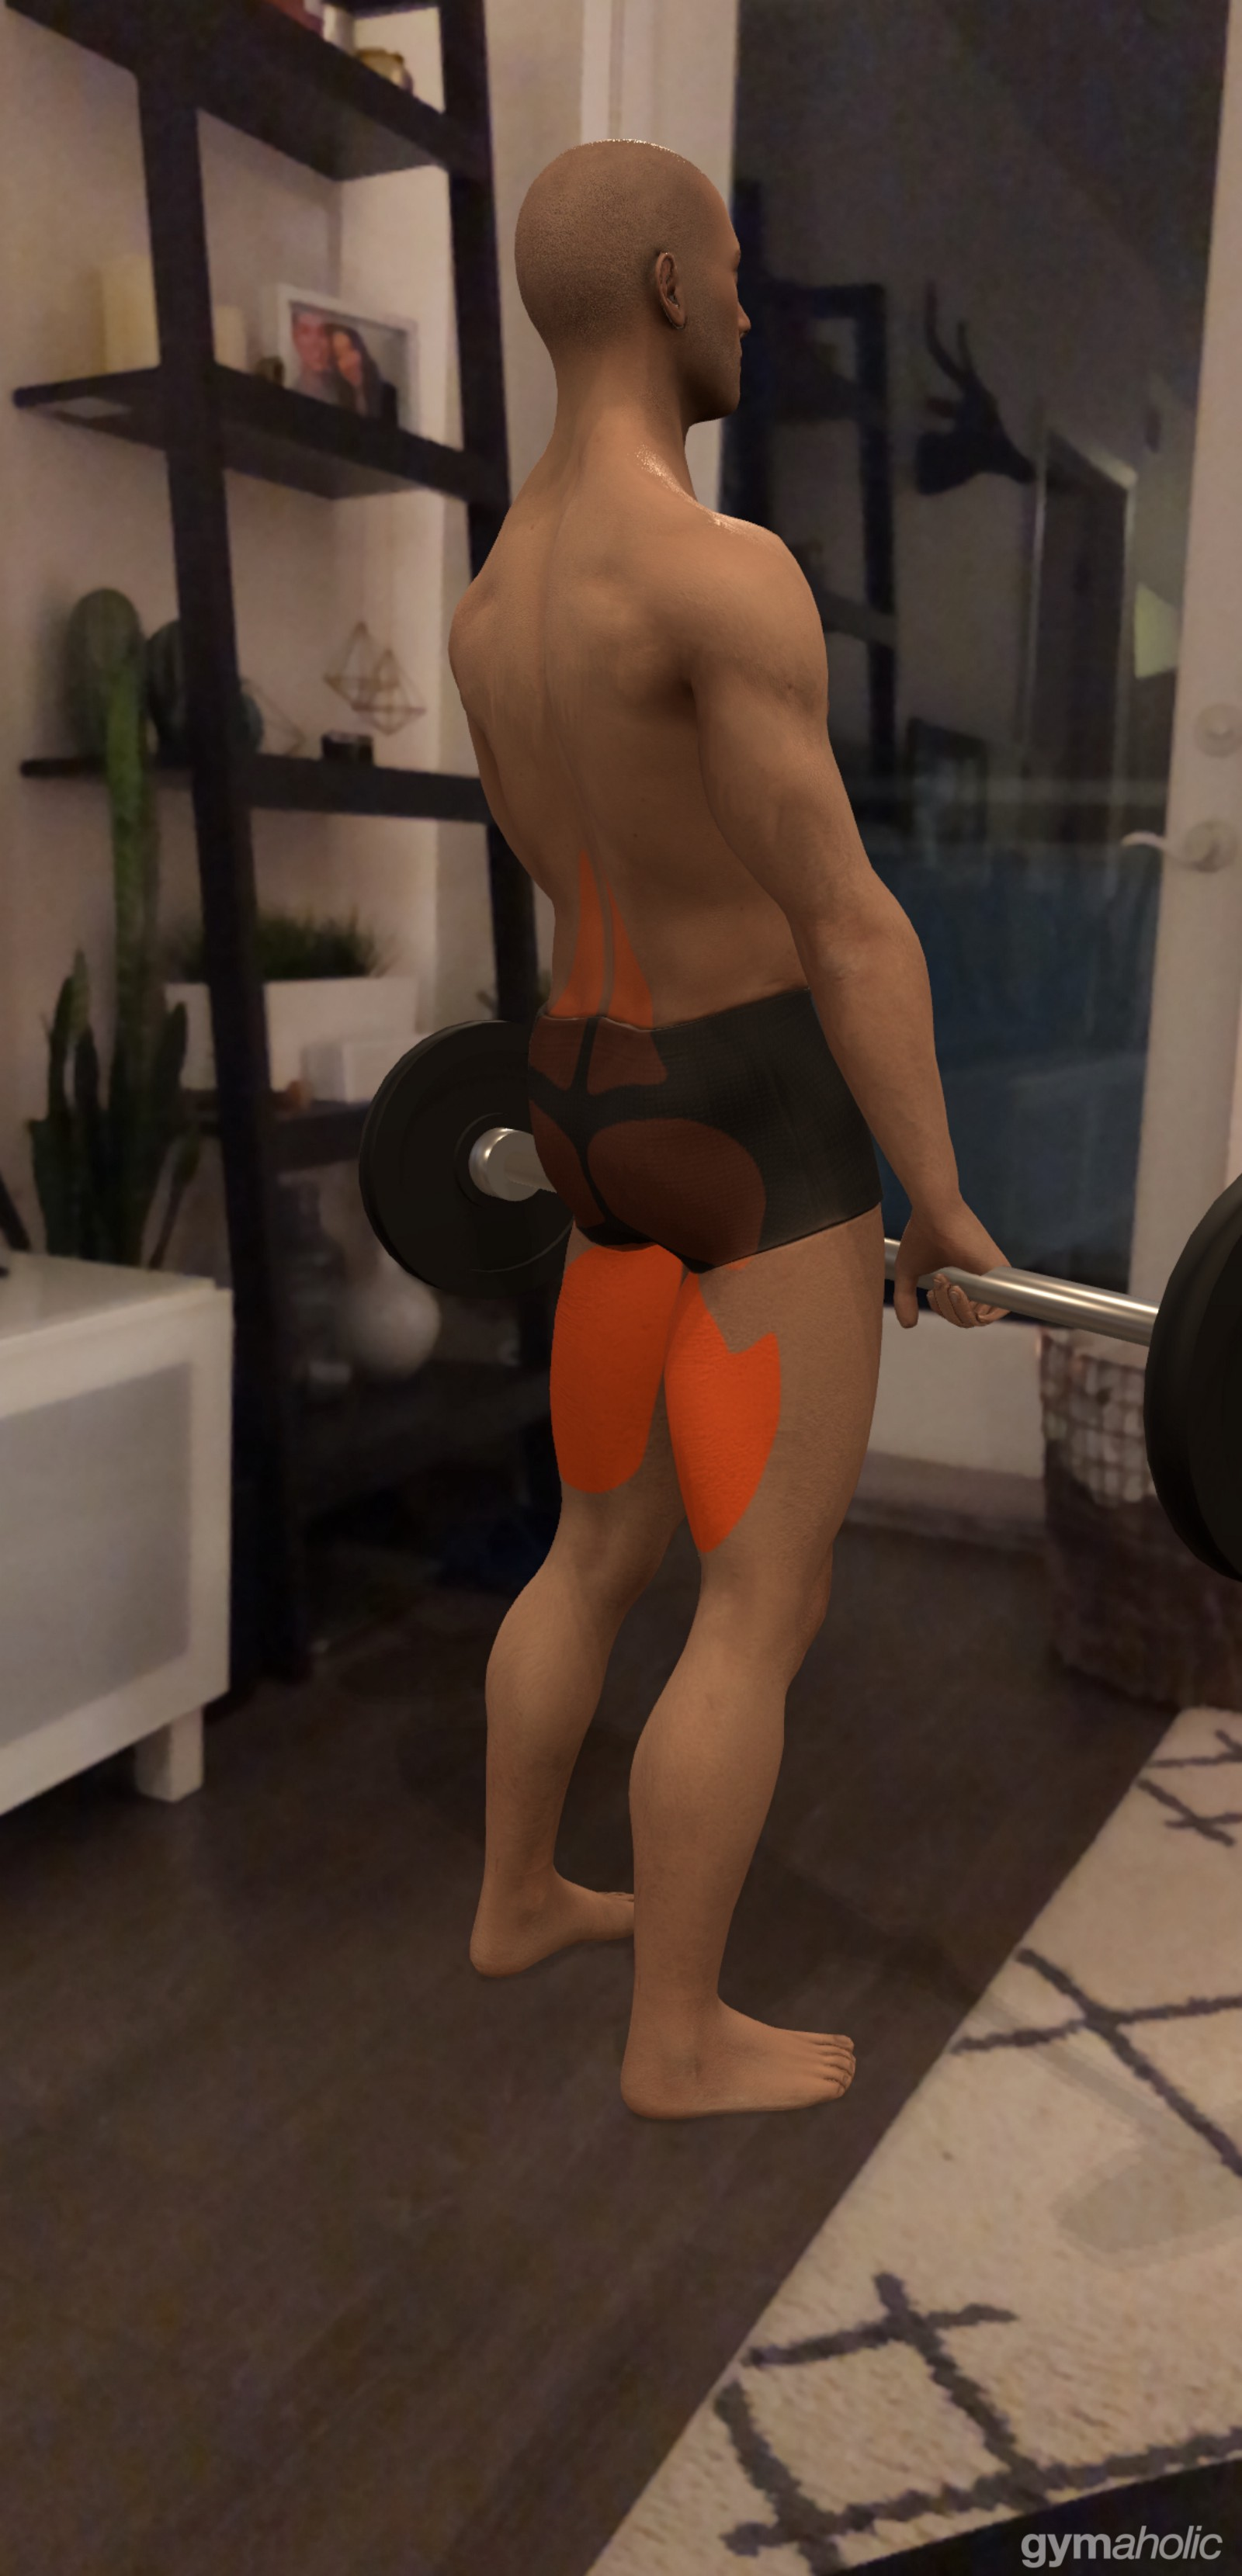 AR helps teach proper form and give cues for what muscles to use.